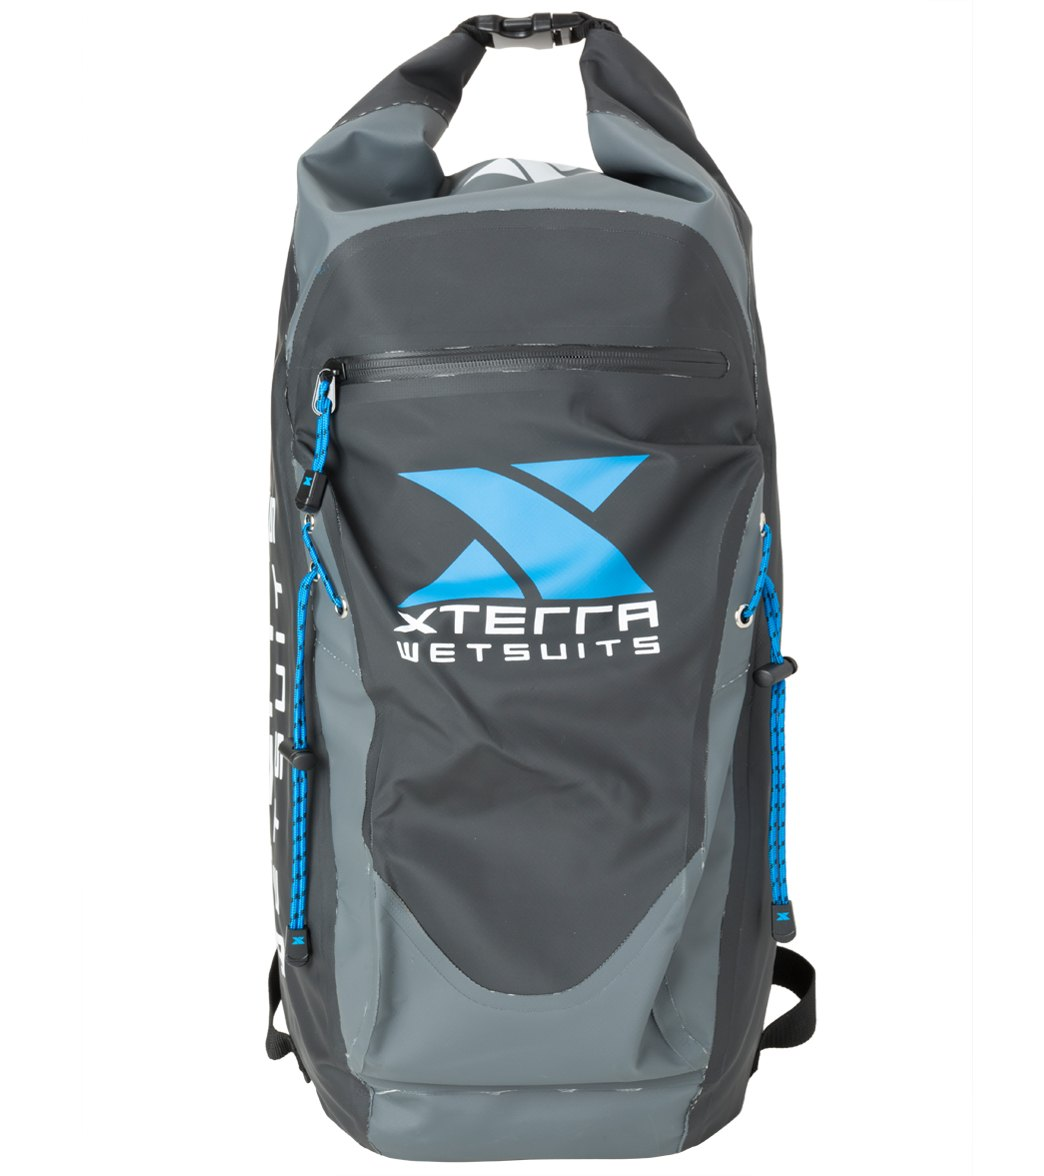 b6b543d3cb57 Xterra Wetsuits Drybag Backpack at SwimOutlet.com - Free Shipping